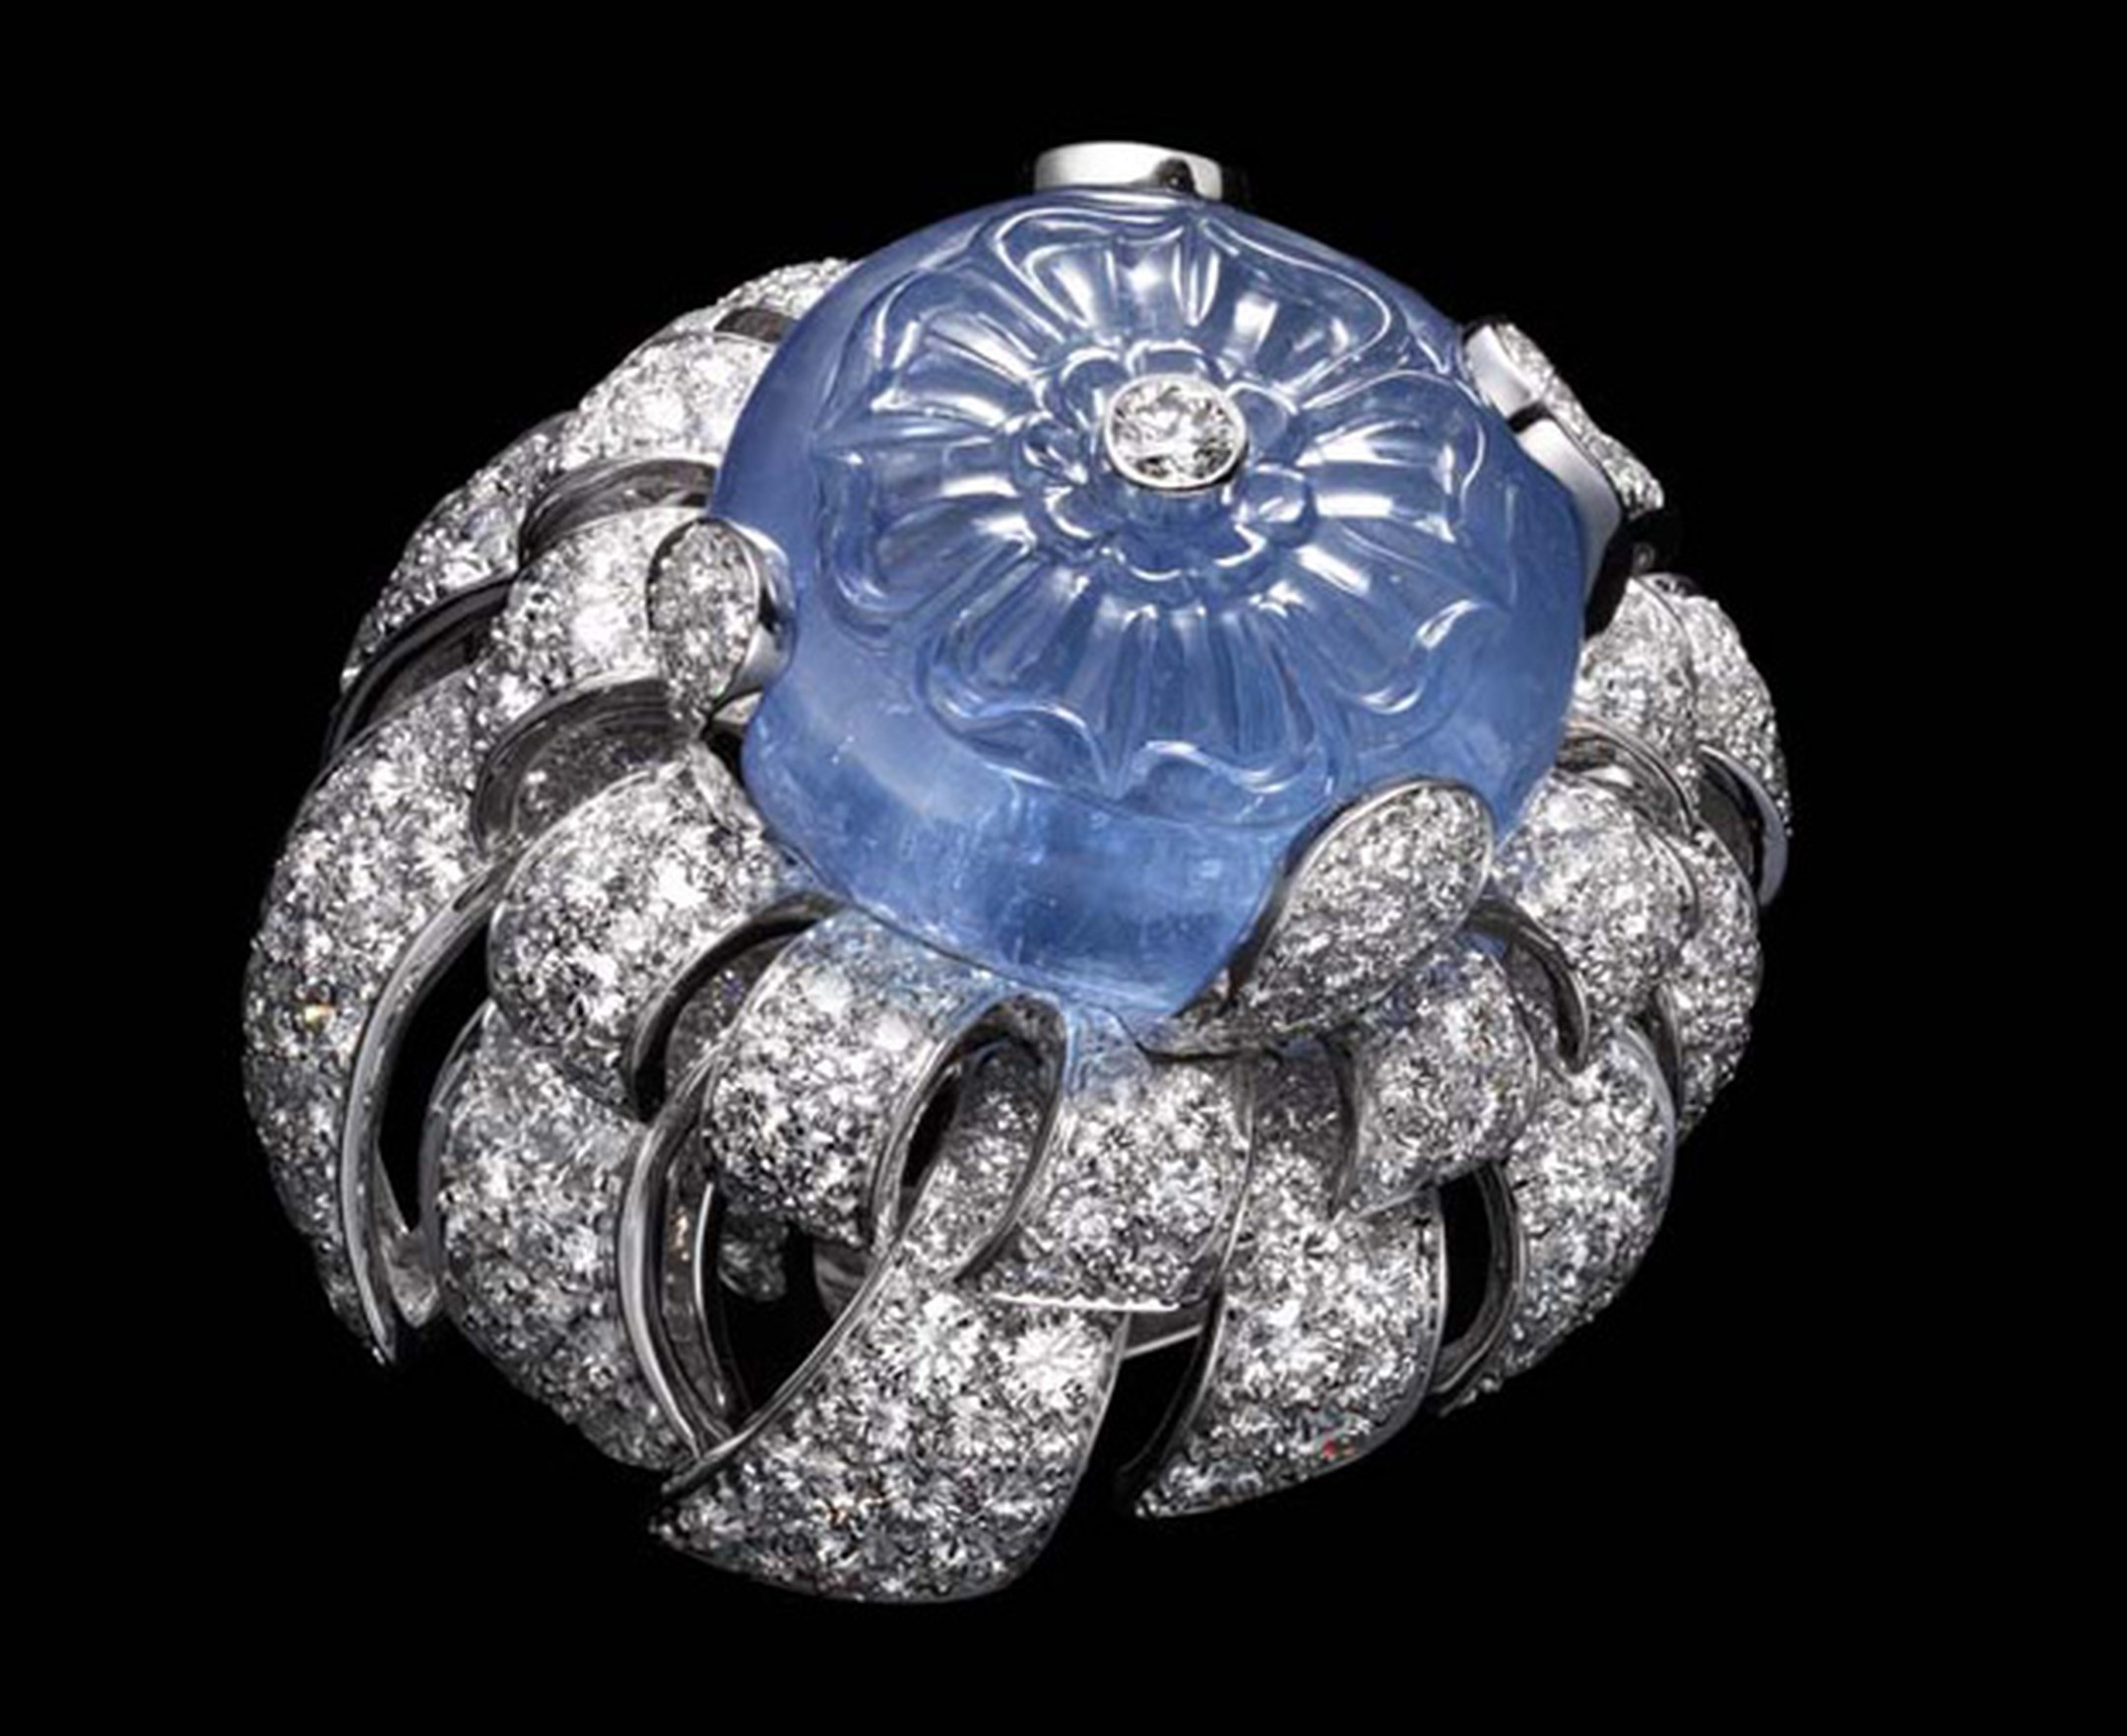 Cartier carved sapphire and diamond ring evoking water